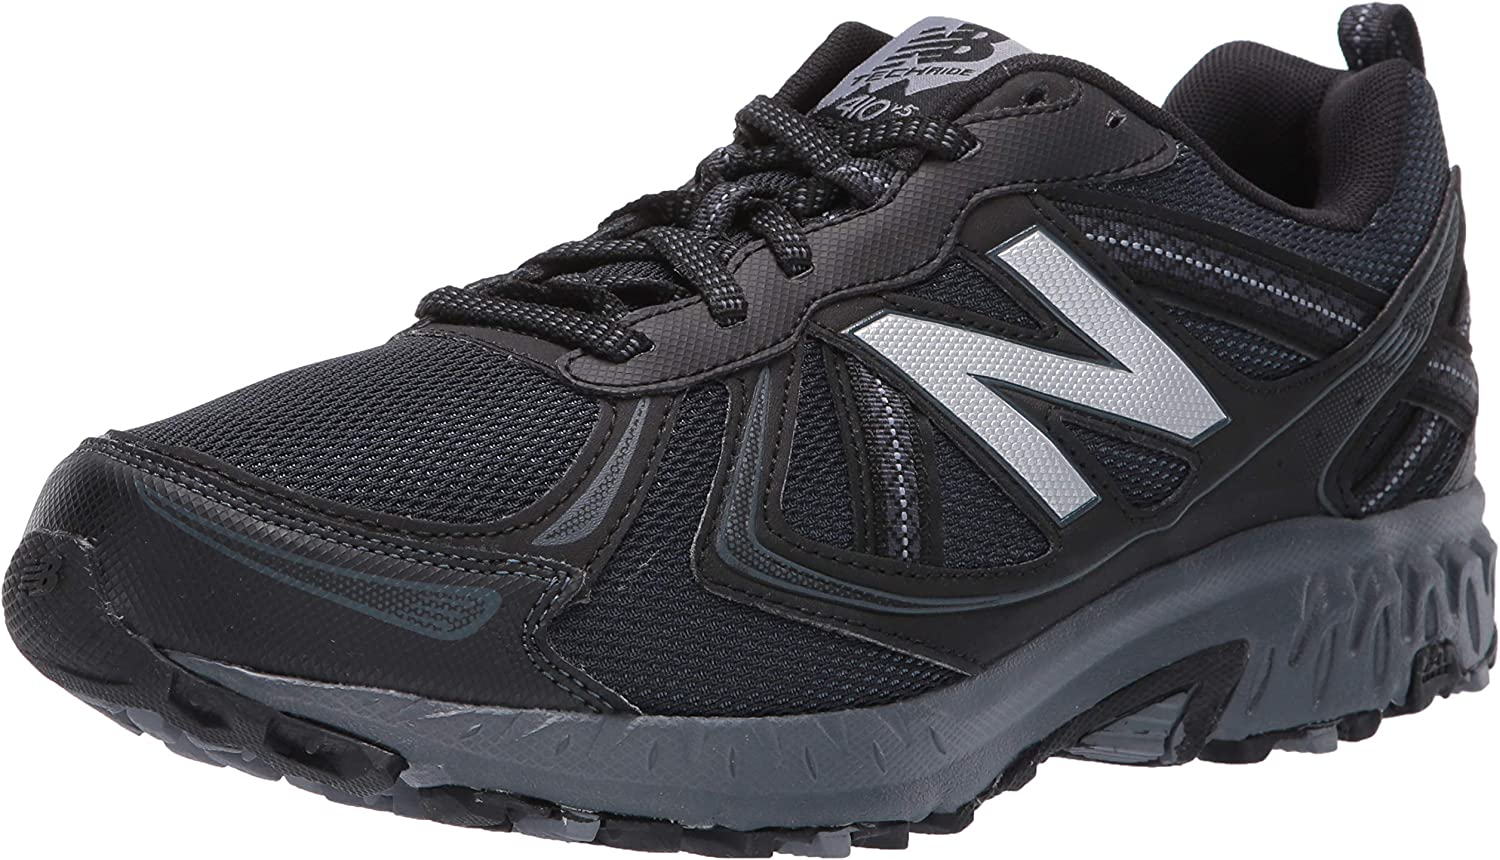 New Balance Men s Mt410v5 Cushioning Trail Runner